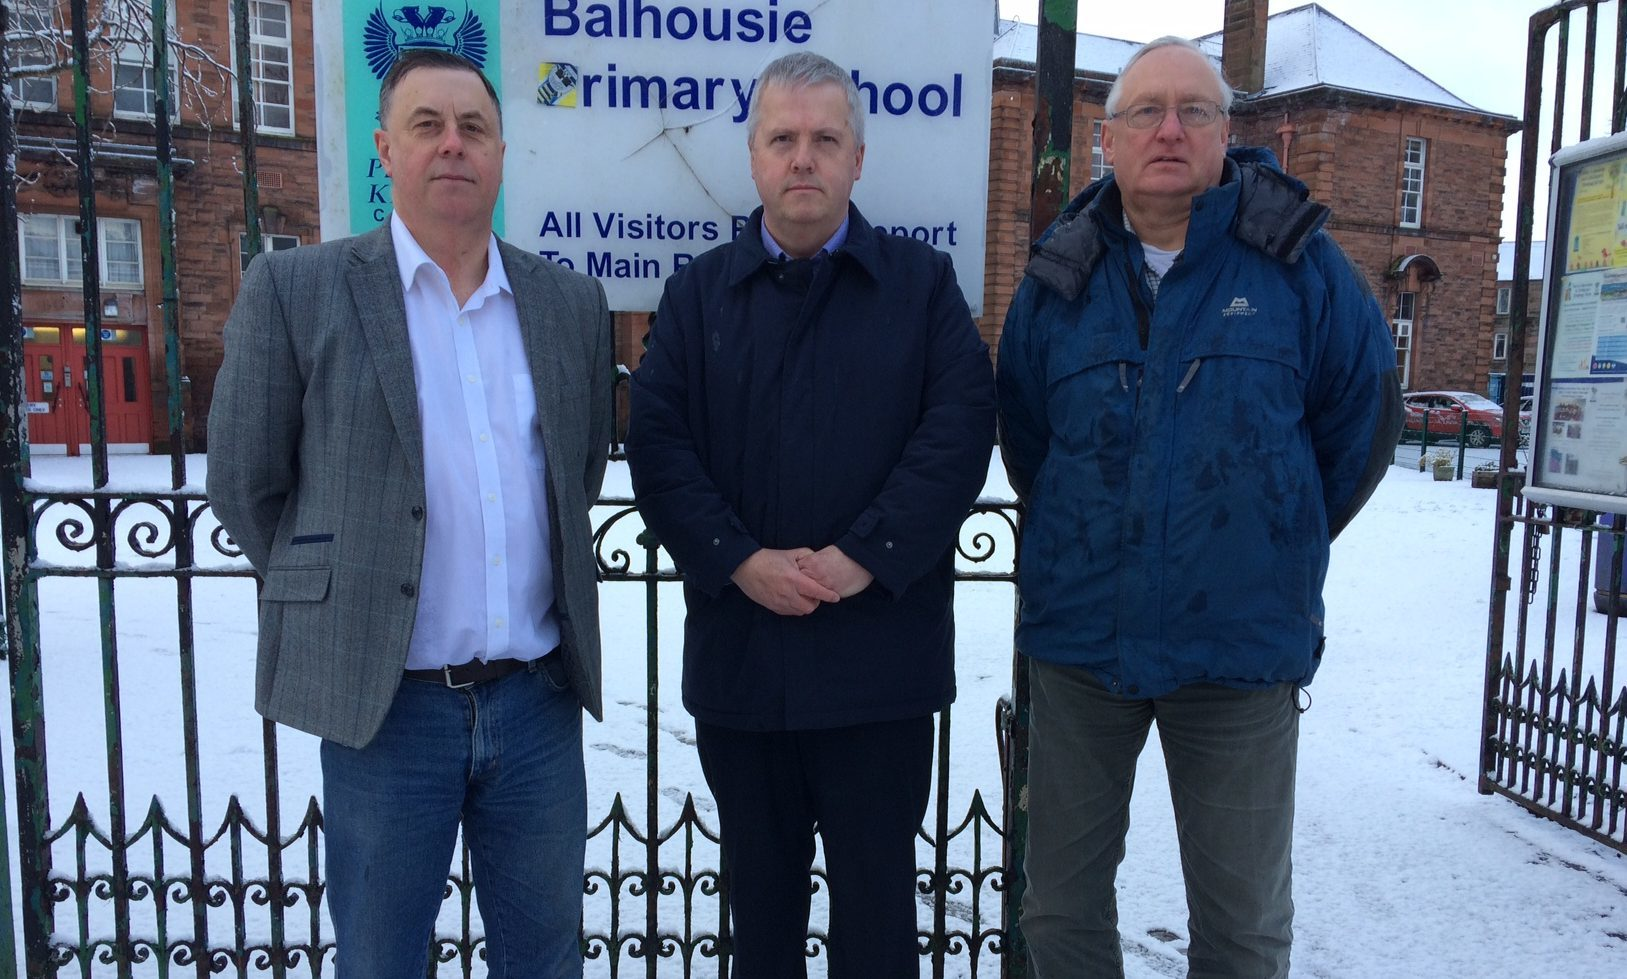 Councillors met at Balhousie Primary on Friday morning